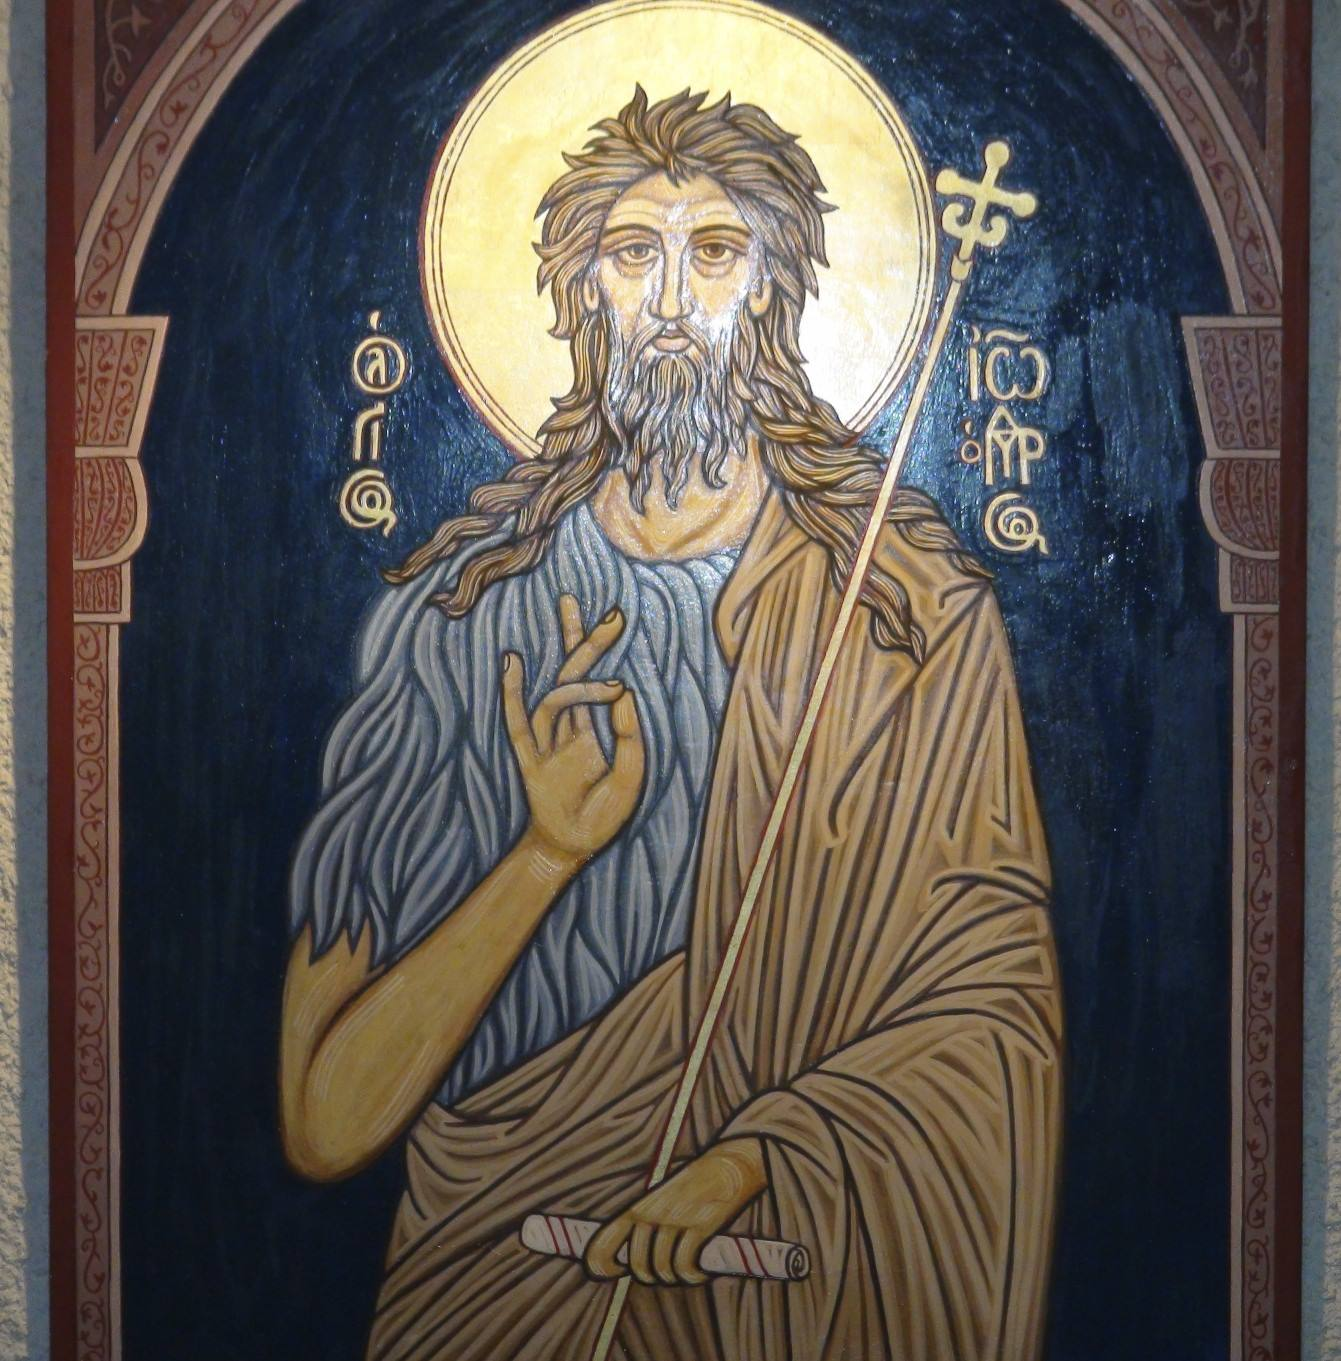 an ancient icon of John the Baptizer, showing his hairy shirt and staff with a Russian style cross on the top.